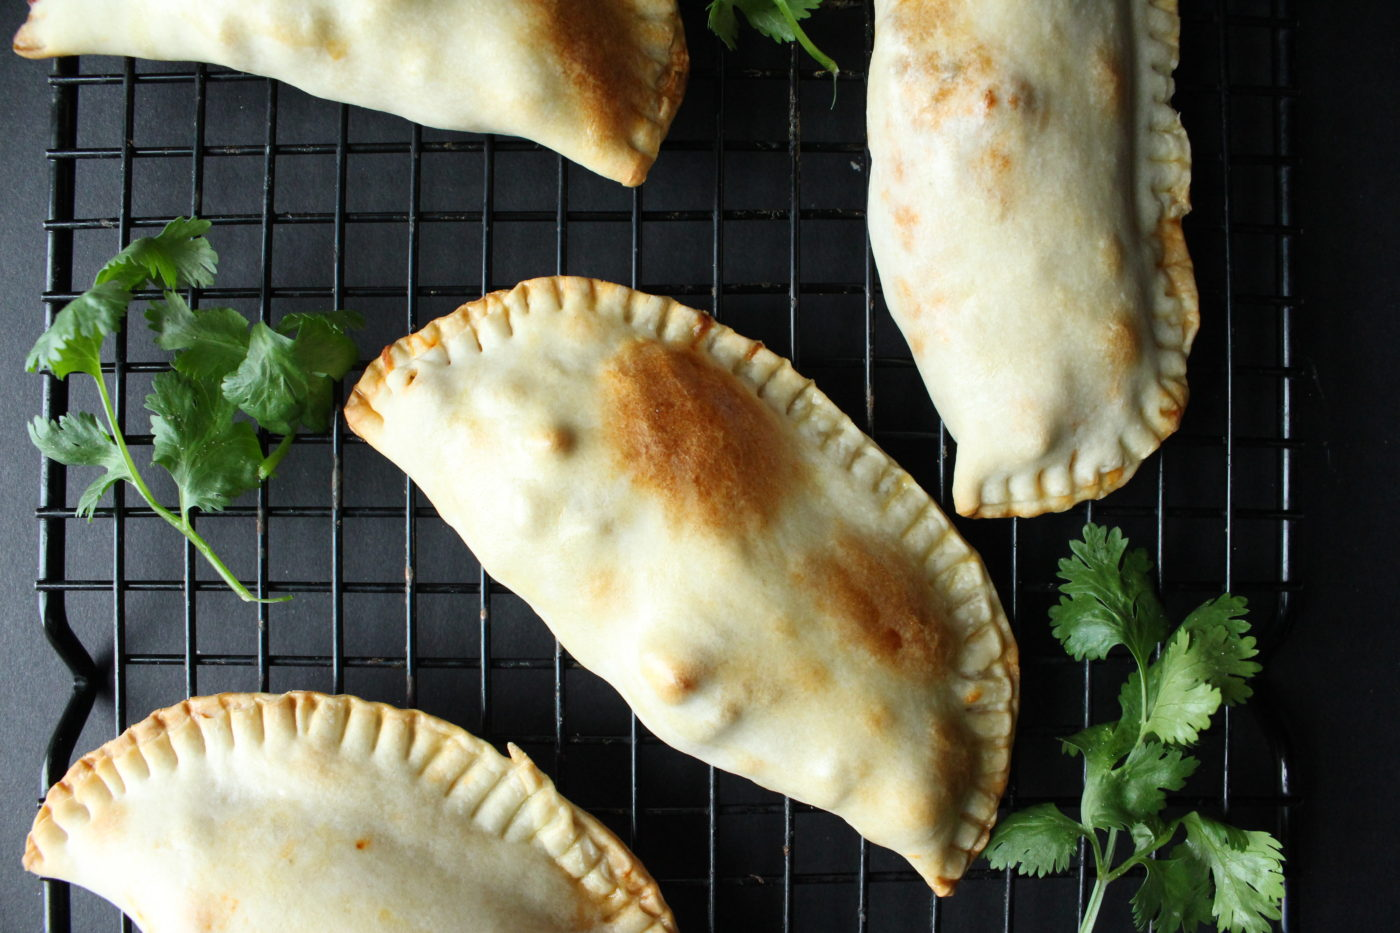 Empanadas are a delicious comfort food. Here's how to make easy empanadas without a 'real' recipe.